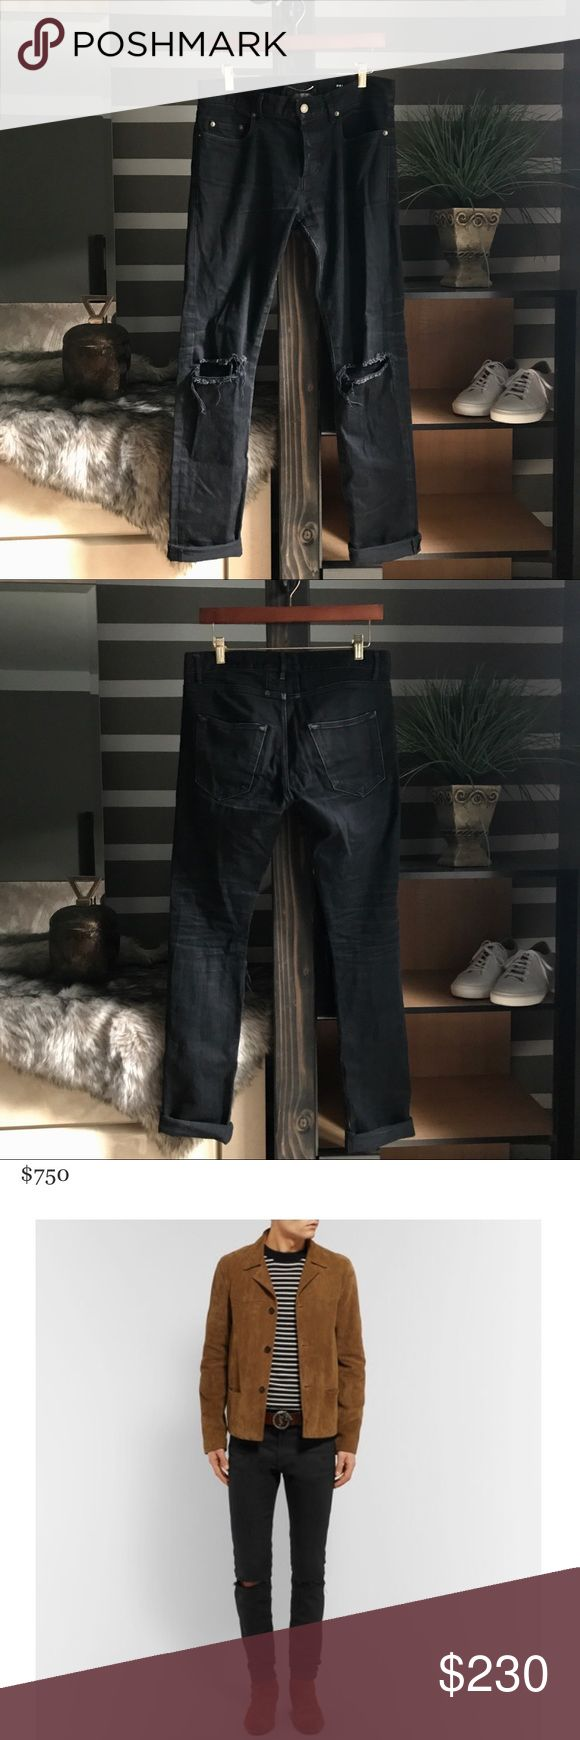 Saint Laurent Ripped Knee Distressed Denim Jeans They are in good used condition. There is some normal wearing but Saint Laurent is a high quality brand and their products are built to last. Years and years still left in these bad boys. Stretch denim. Knee slits. You can feel the quality when wearing them. Listed as a 32 waist bc that's how they feel. If you have any questions please send me a message and I'll get back to you as swiftly as I can.  Also if you want check out the rest of my…